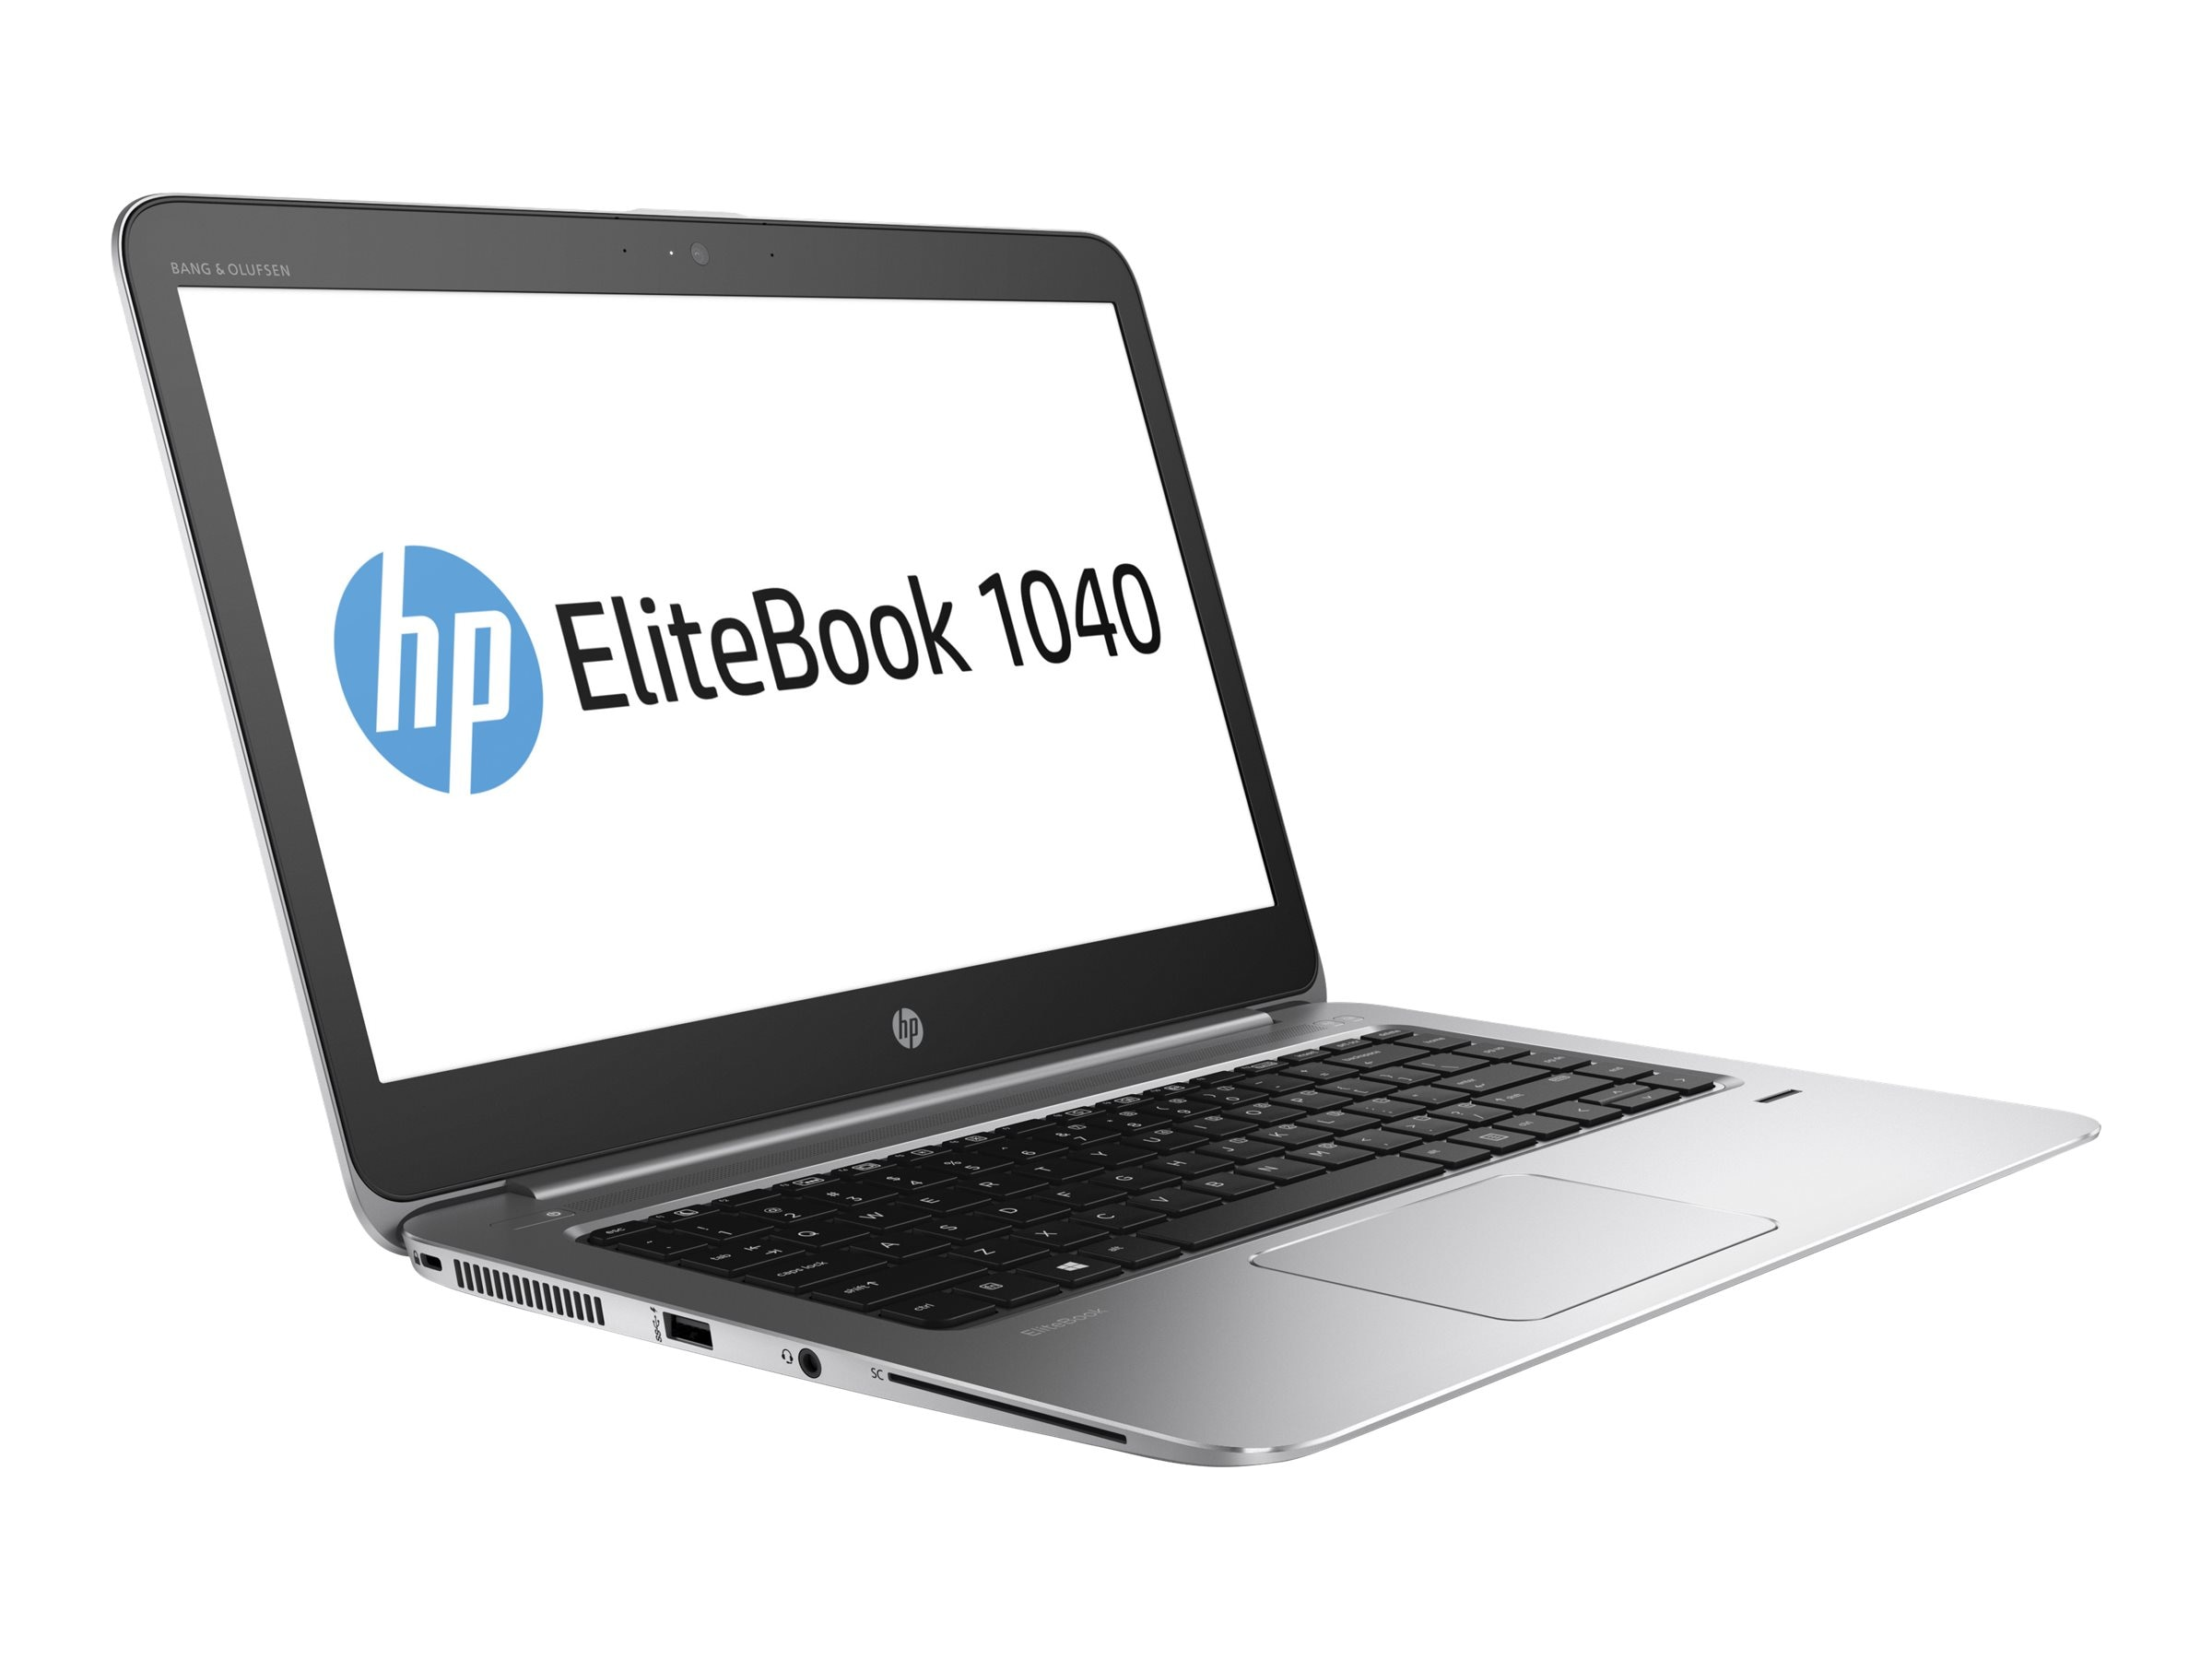 HP EliteBook 1040 G3 2.4GHz Core i5 14in display